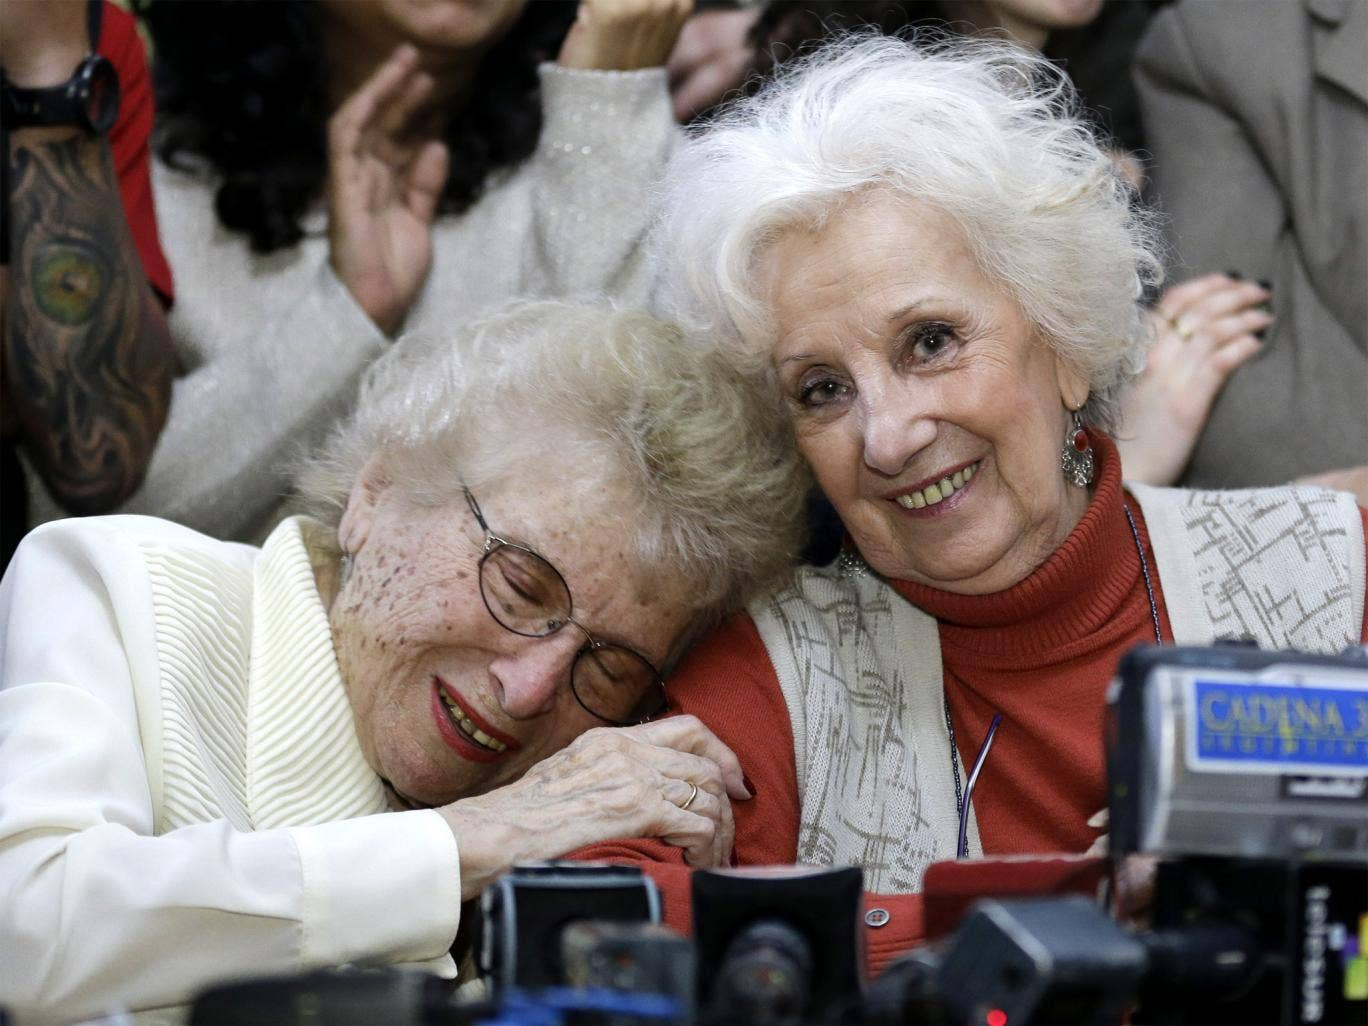 Human rights activist Estela de Carlotto (right) hugs Rosa de Roisinblit at a news conference in Buenos Aires